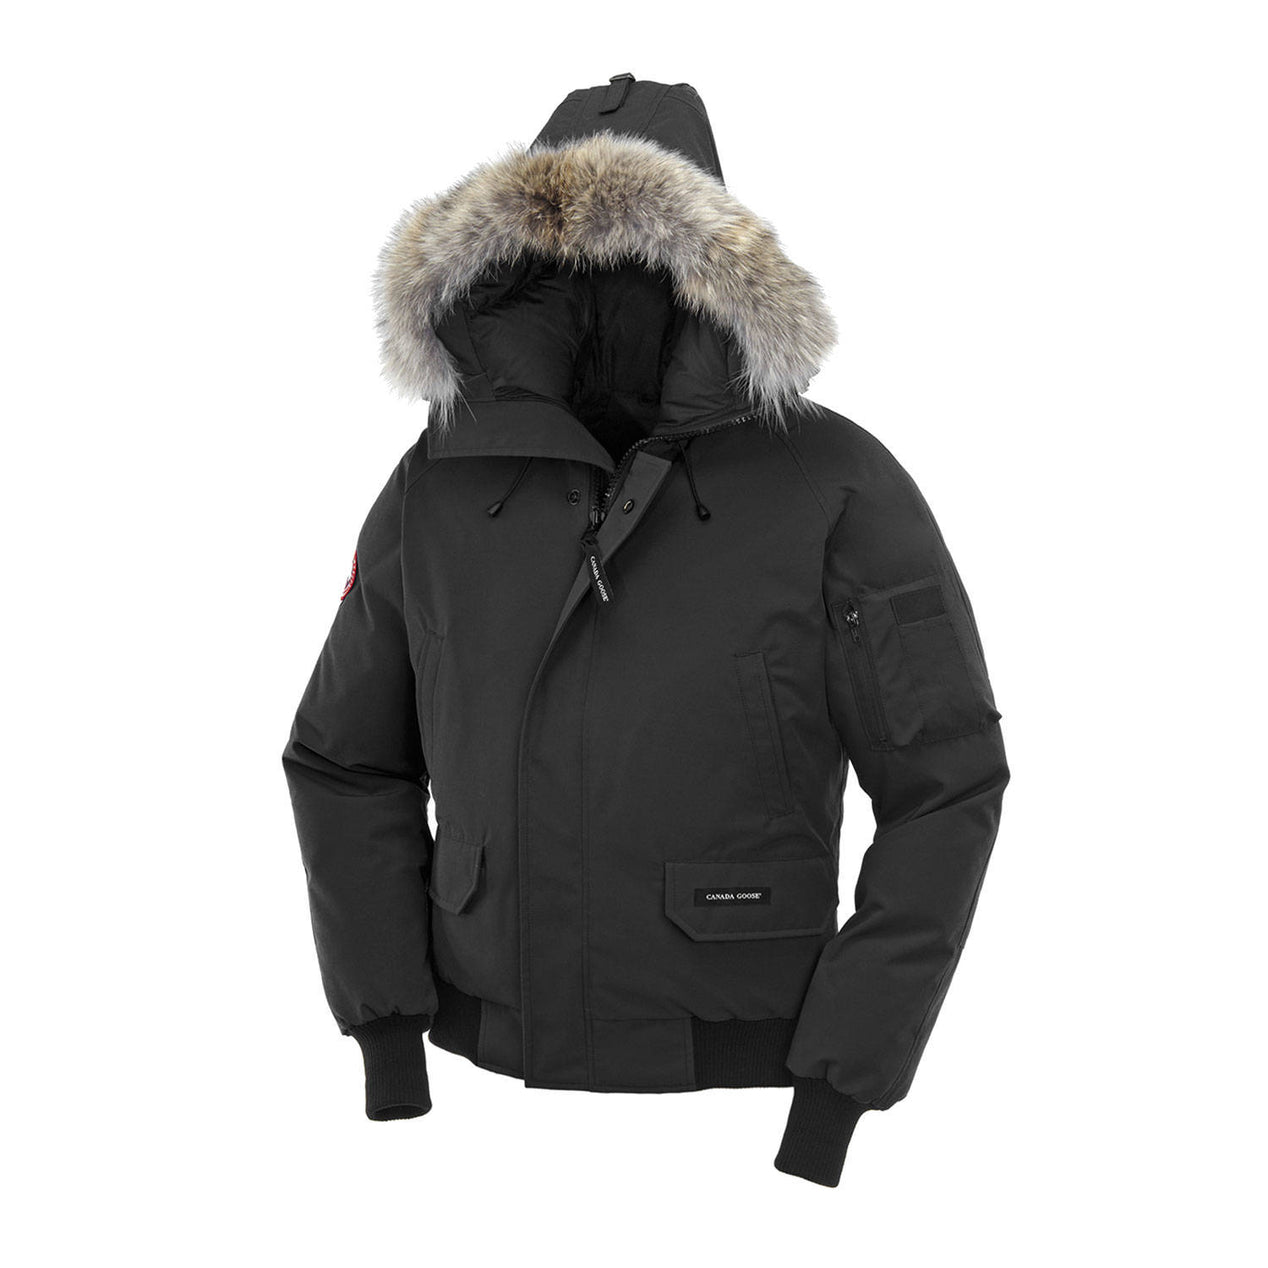 93a7493bf609 Canada Goose Men s Chilliwack Bomber